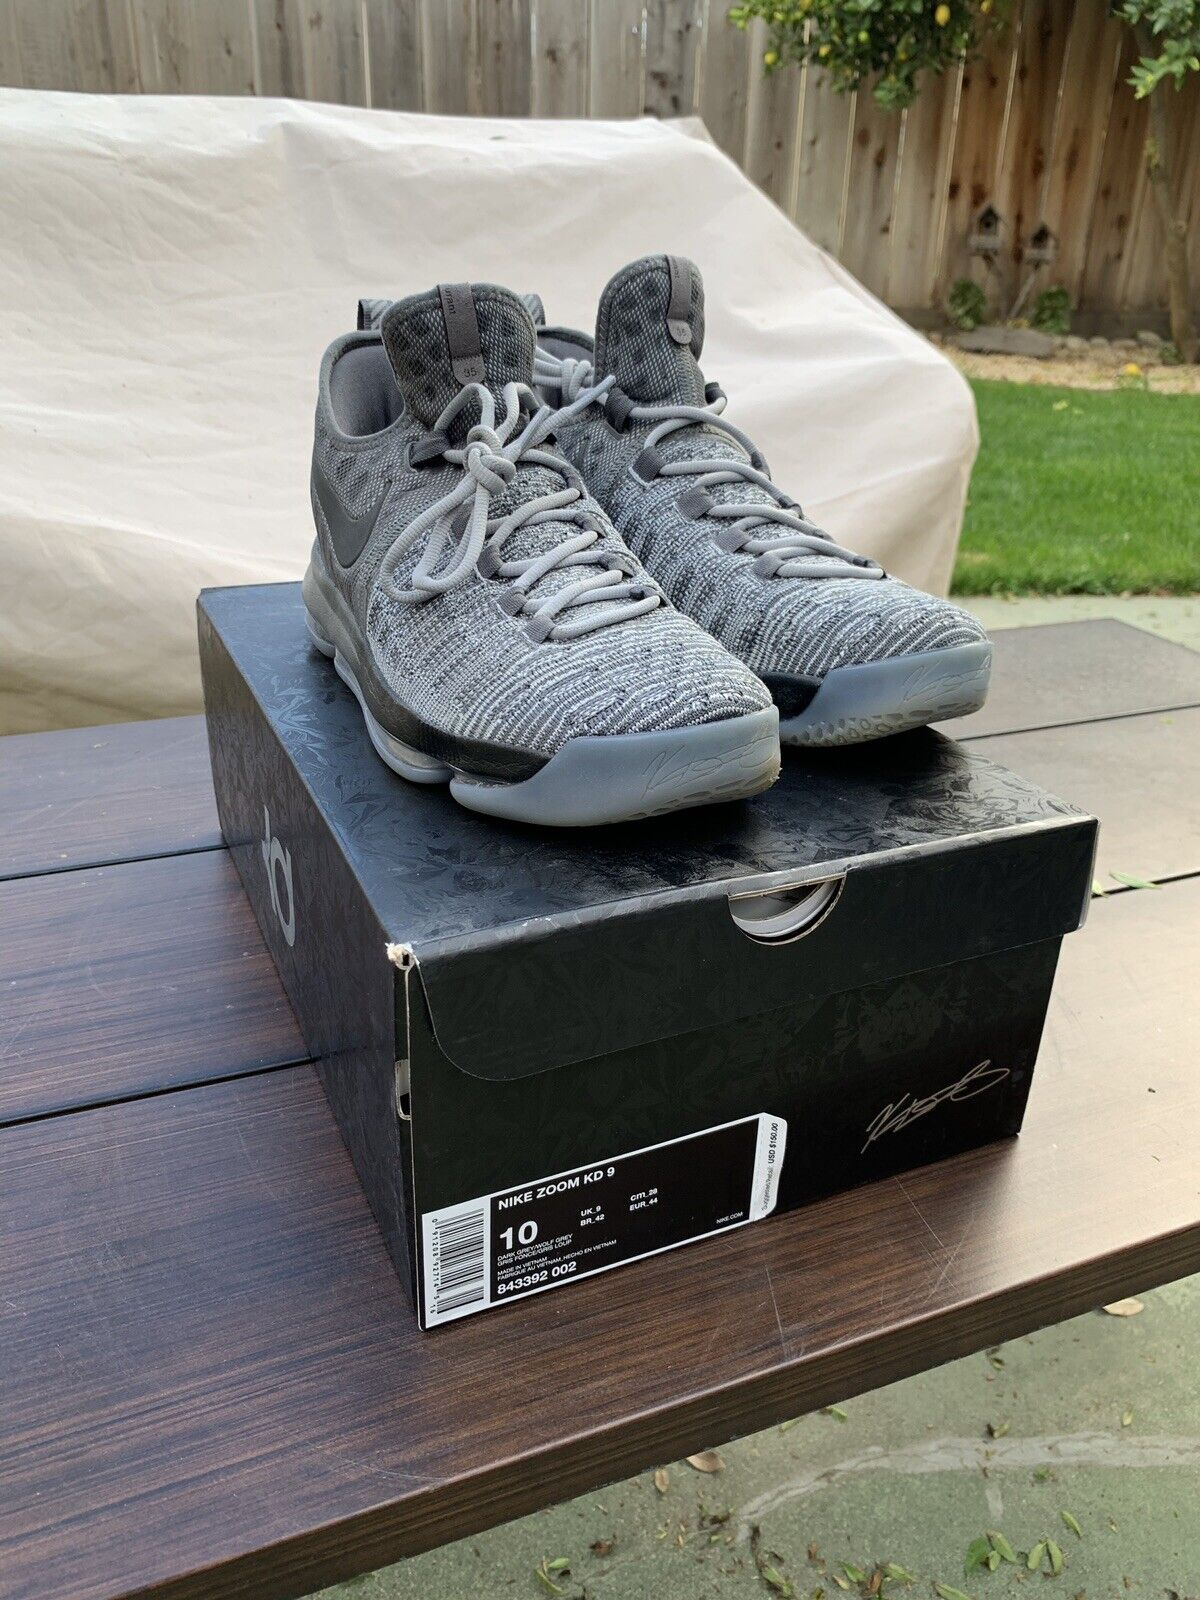 Nike Zoom KD 9 Battle Grey Size 10, Great Condition